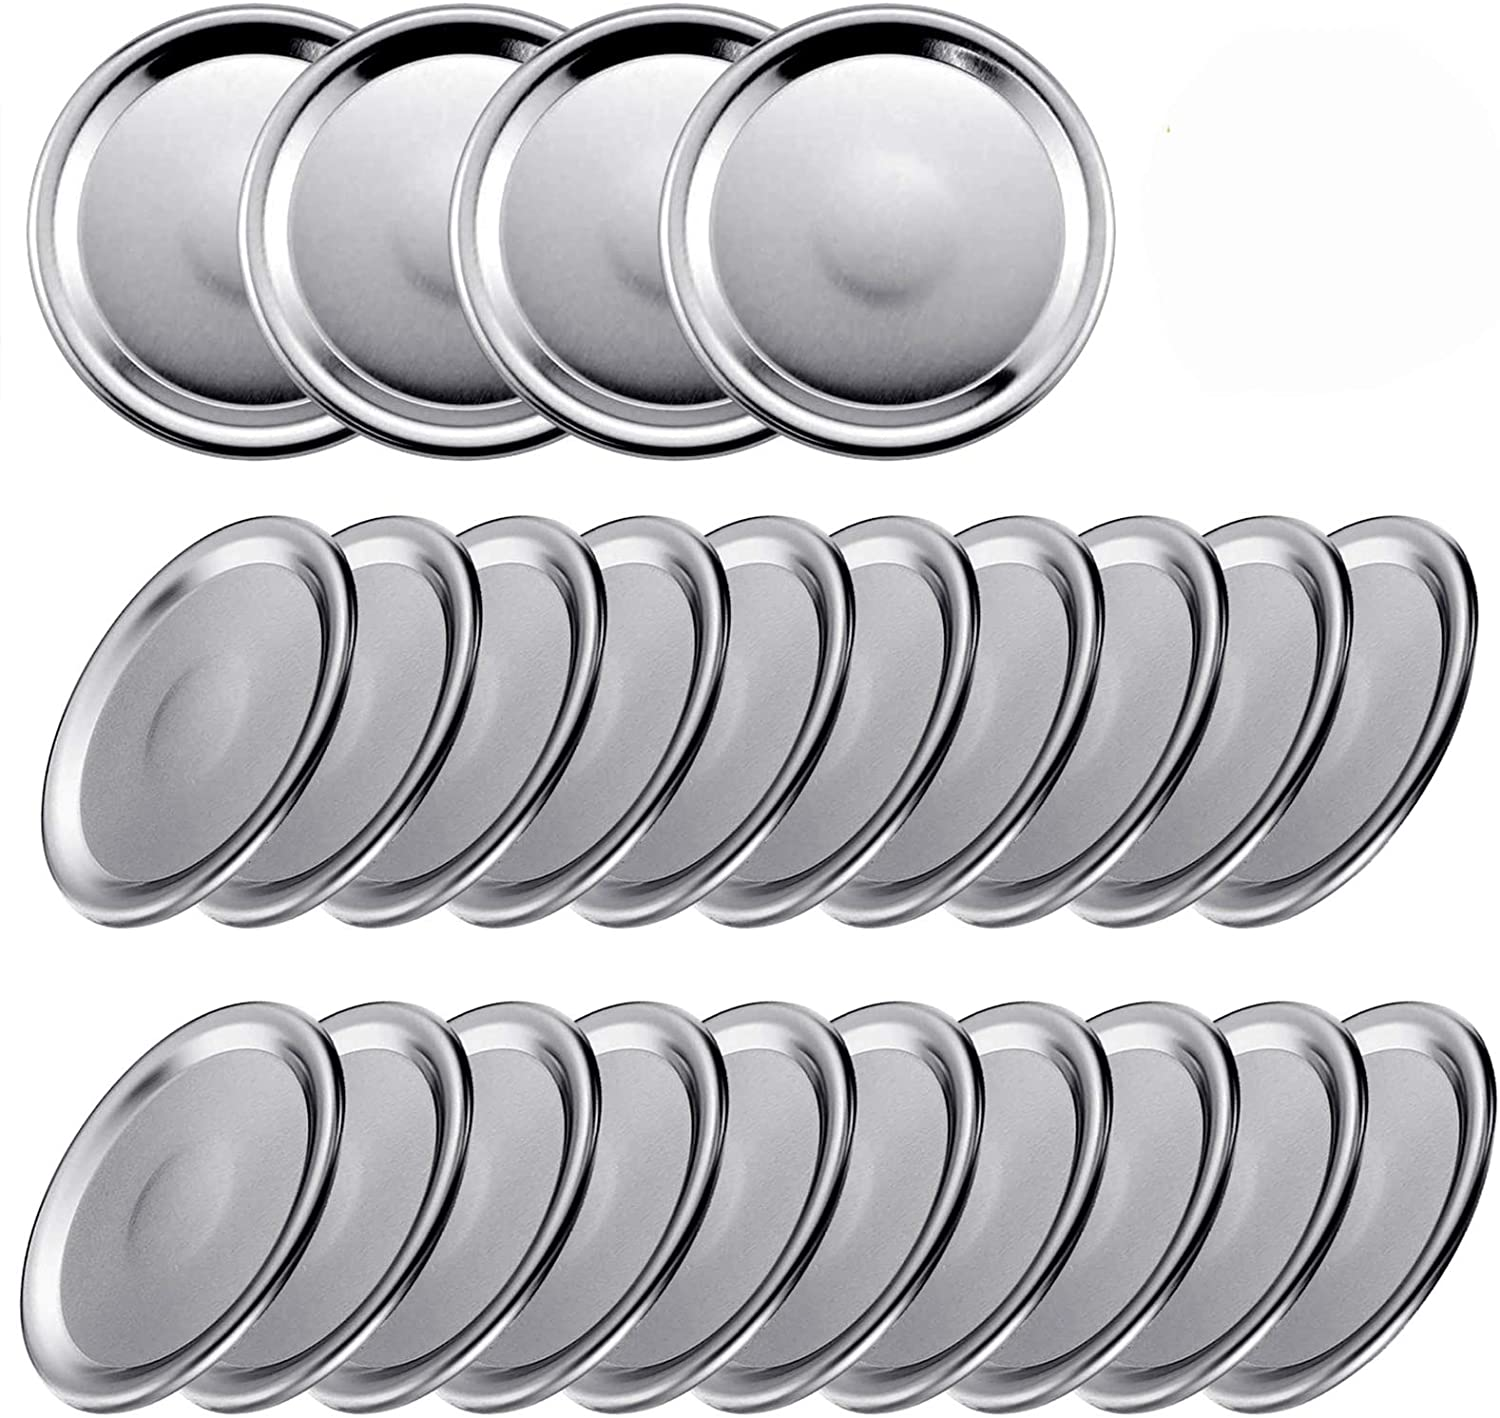 24 Pcs Canning Lids, 70MM Regular Mouth Mason Jar Lids And Bands, Stainless Steel Lids For Mason Jar Wide Mouth, Split-type Lids Leak Proof And Secure Canning Jar Caps